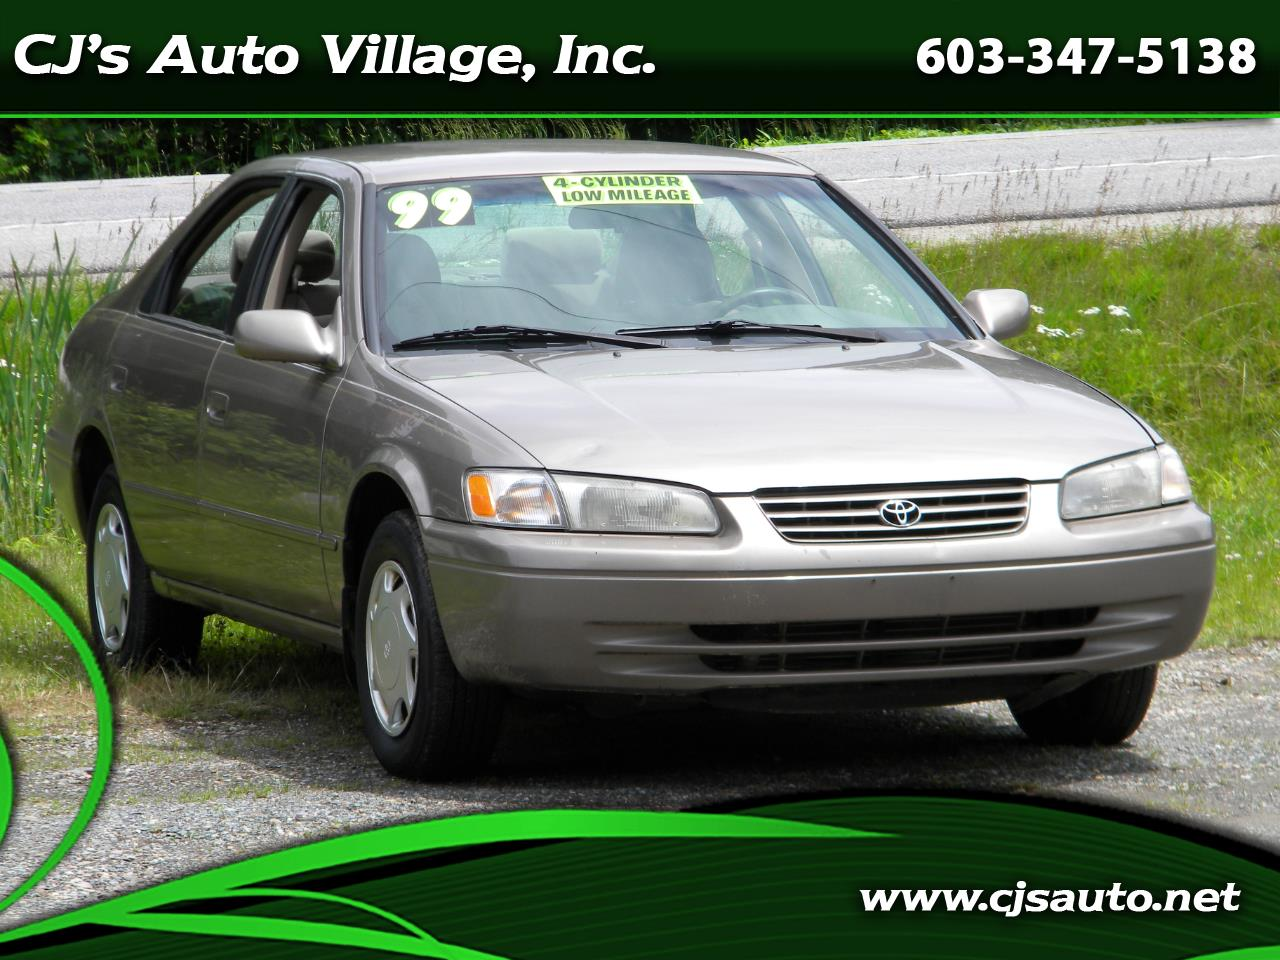 1999 Toyota Camry 4dr Sdn CE Auto